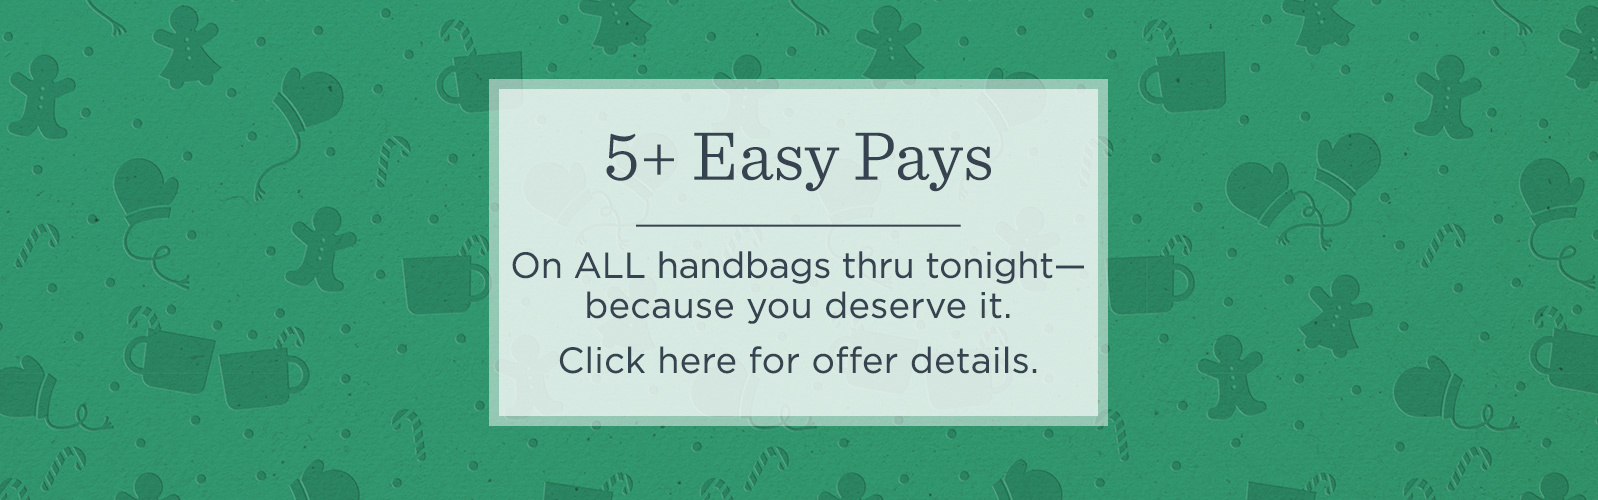 5+ Easy Pays On ALL handbags thru tonight—because you deserve it.  Click here for offer details.